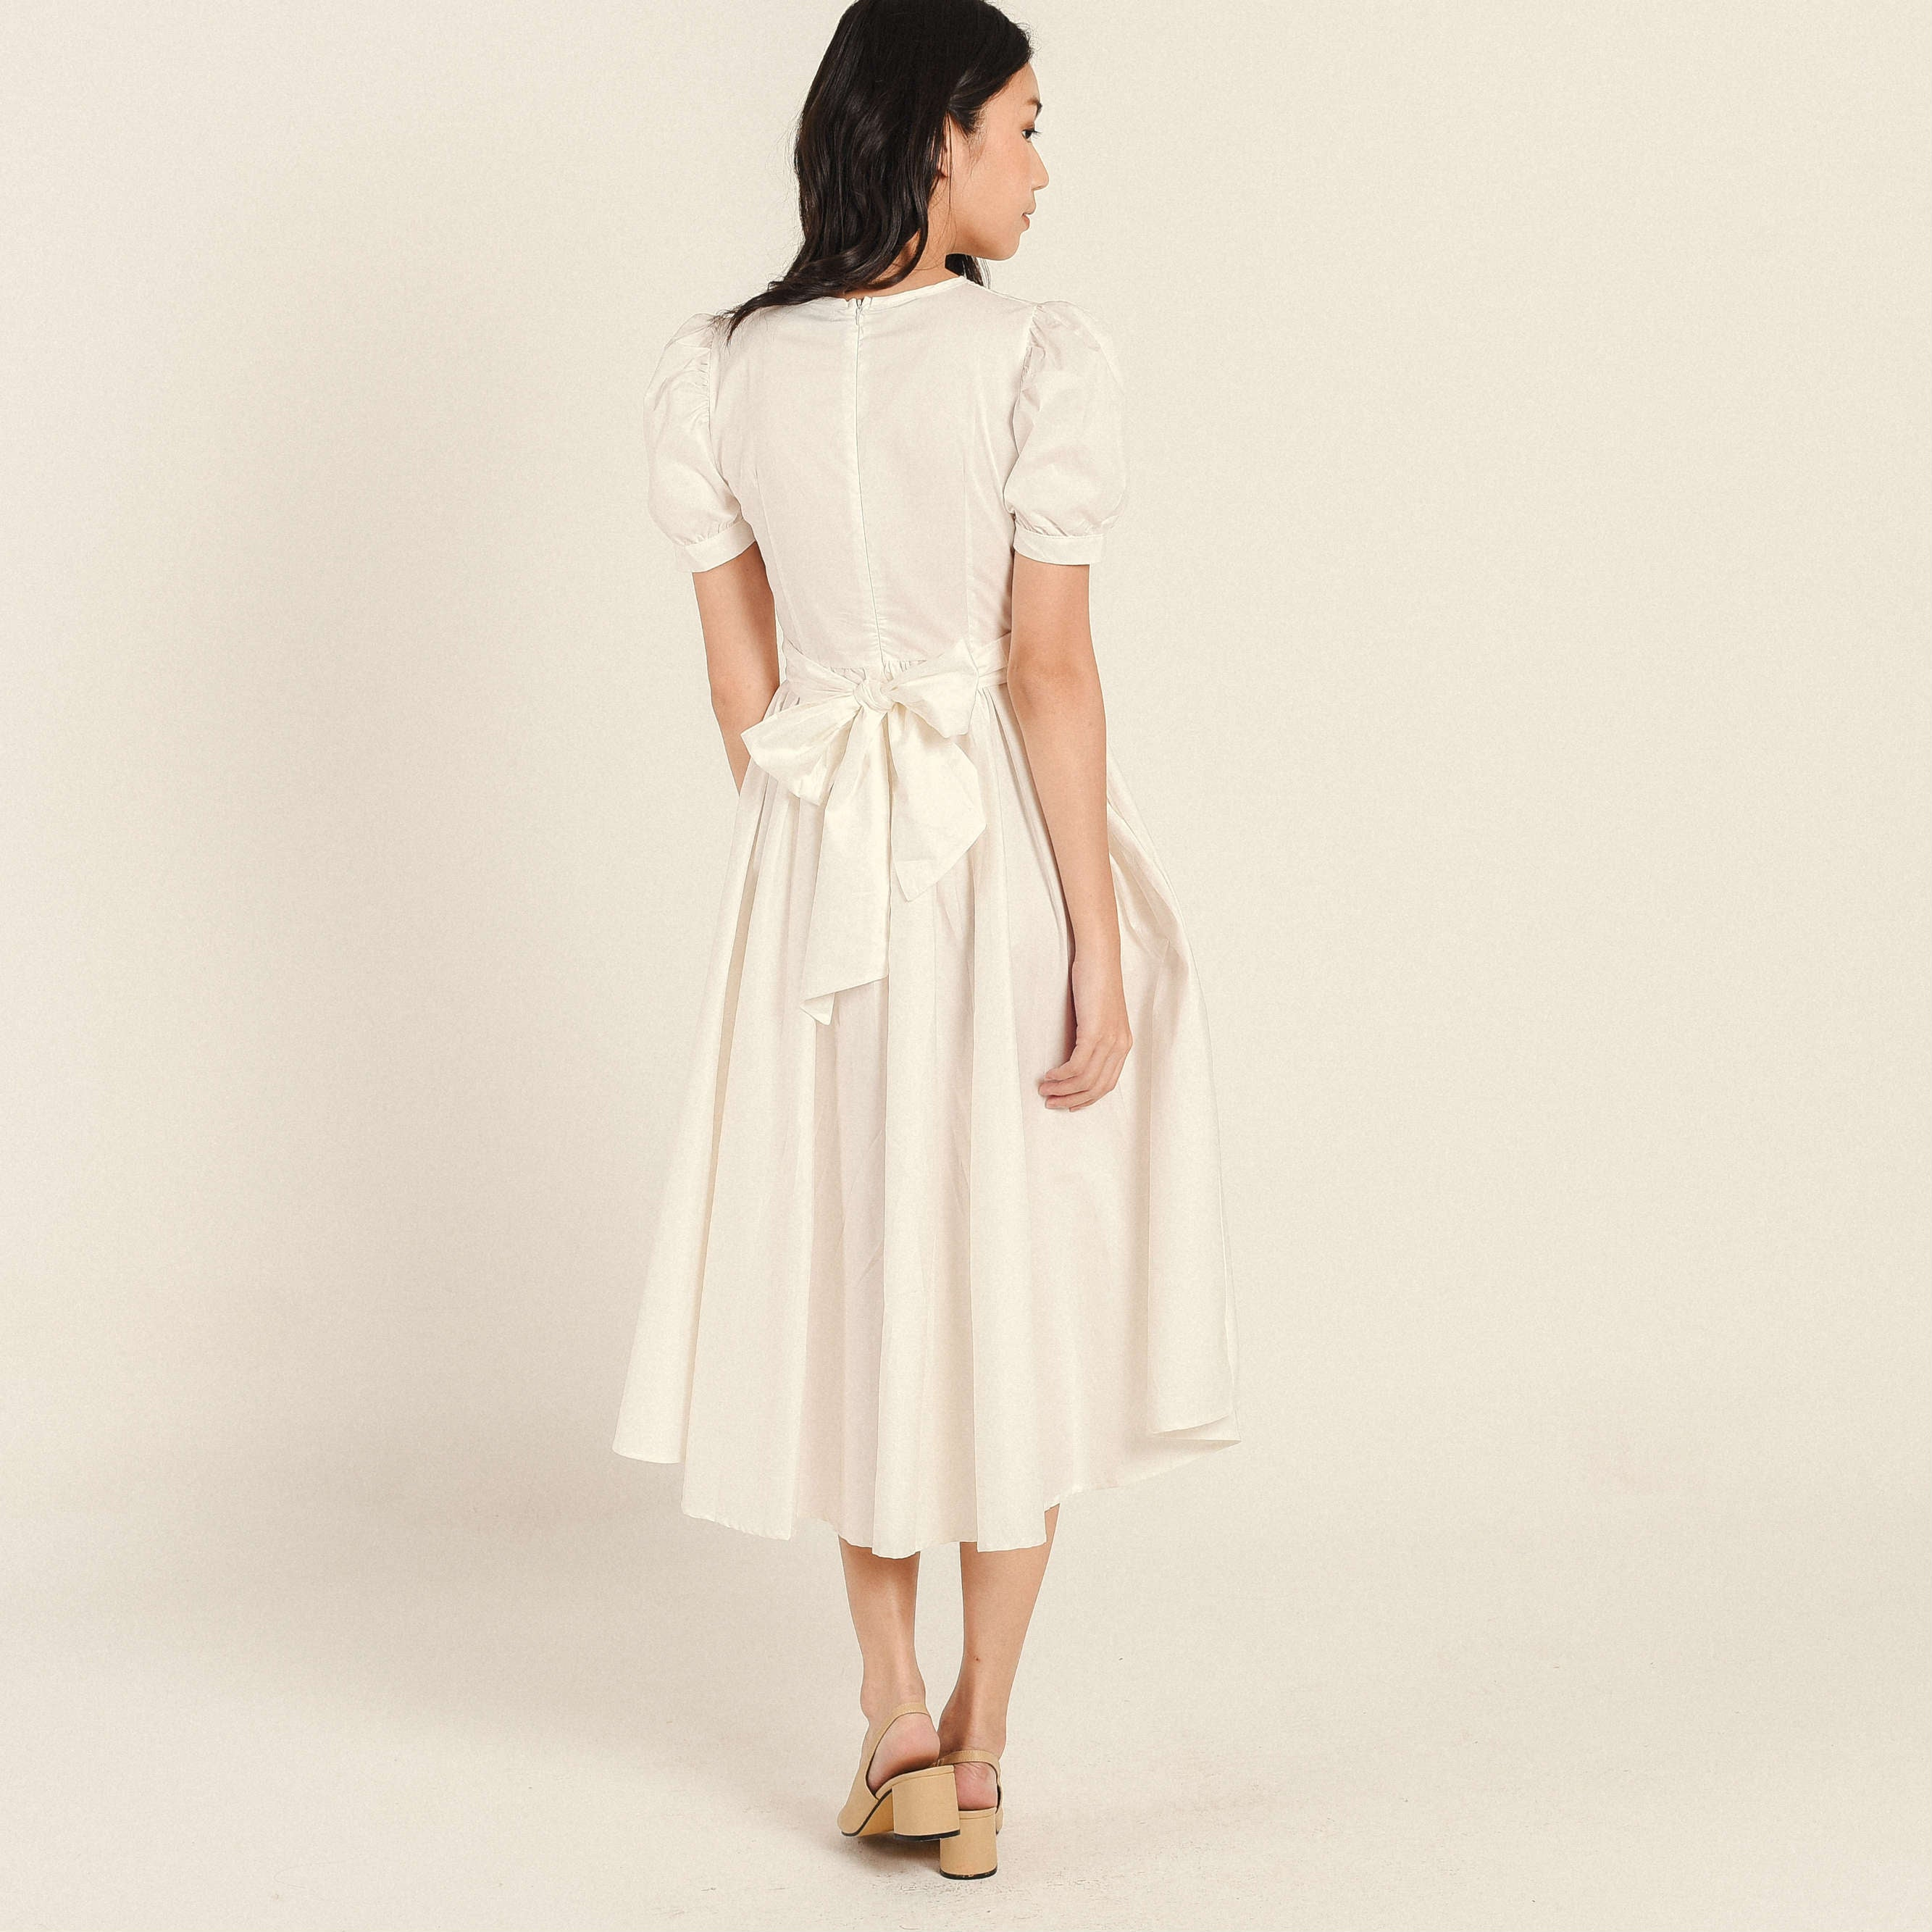 Mary Tie Dress - White